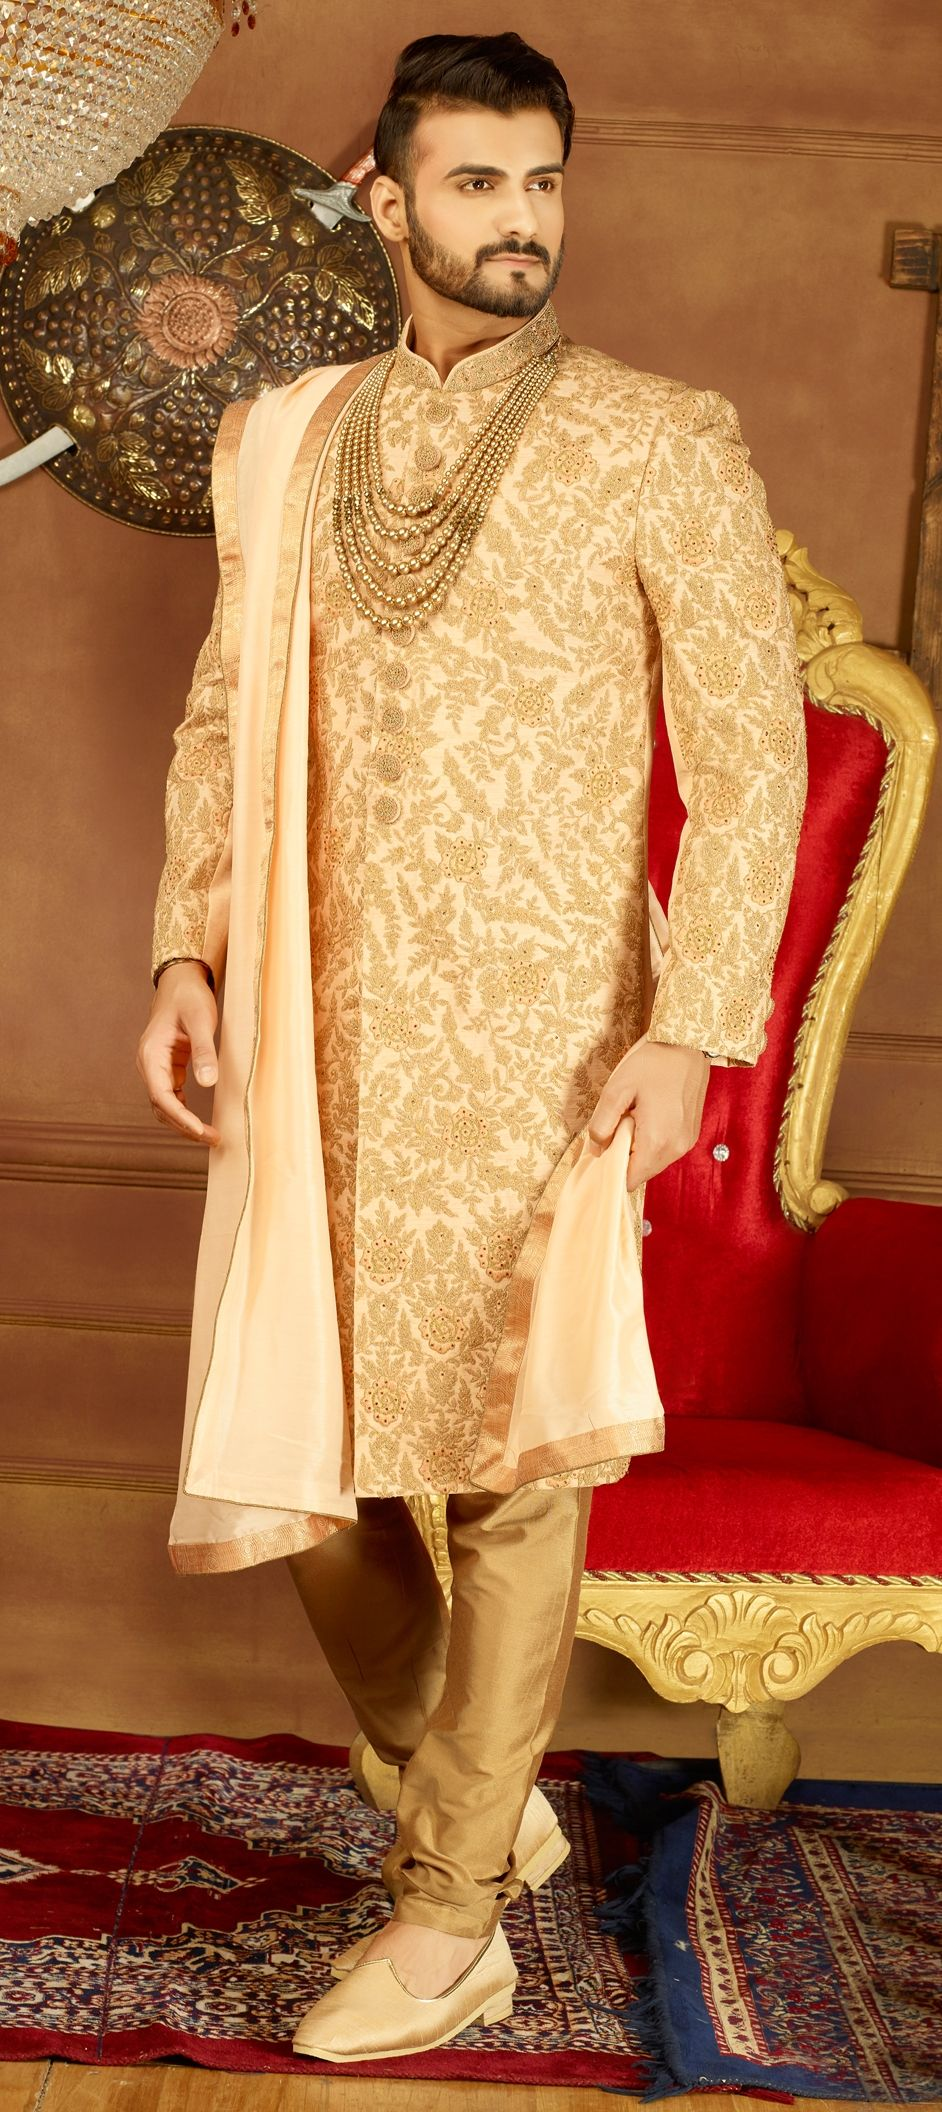 SOME TIPS TO BUY THE PERFECT WEDDING SHERWANIS